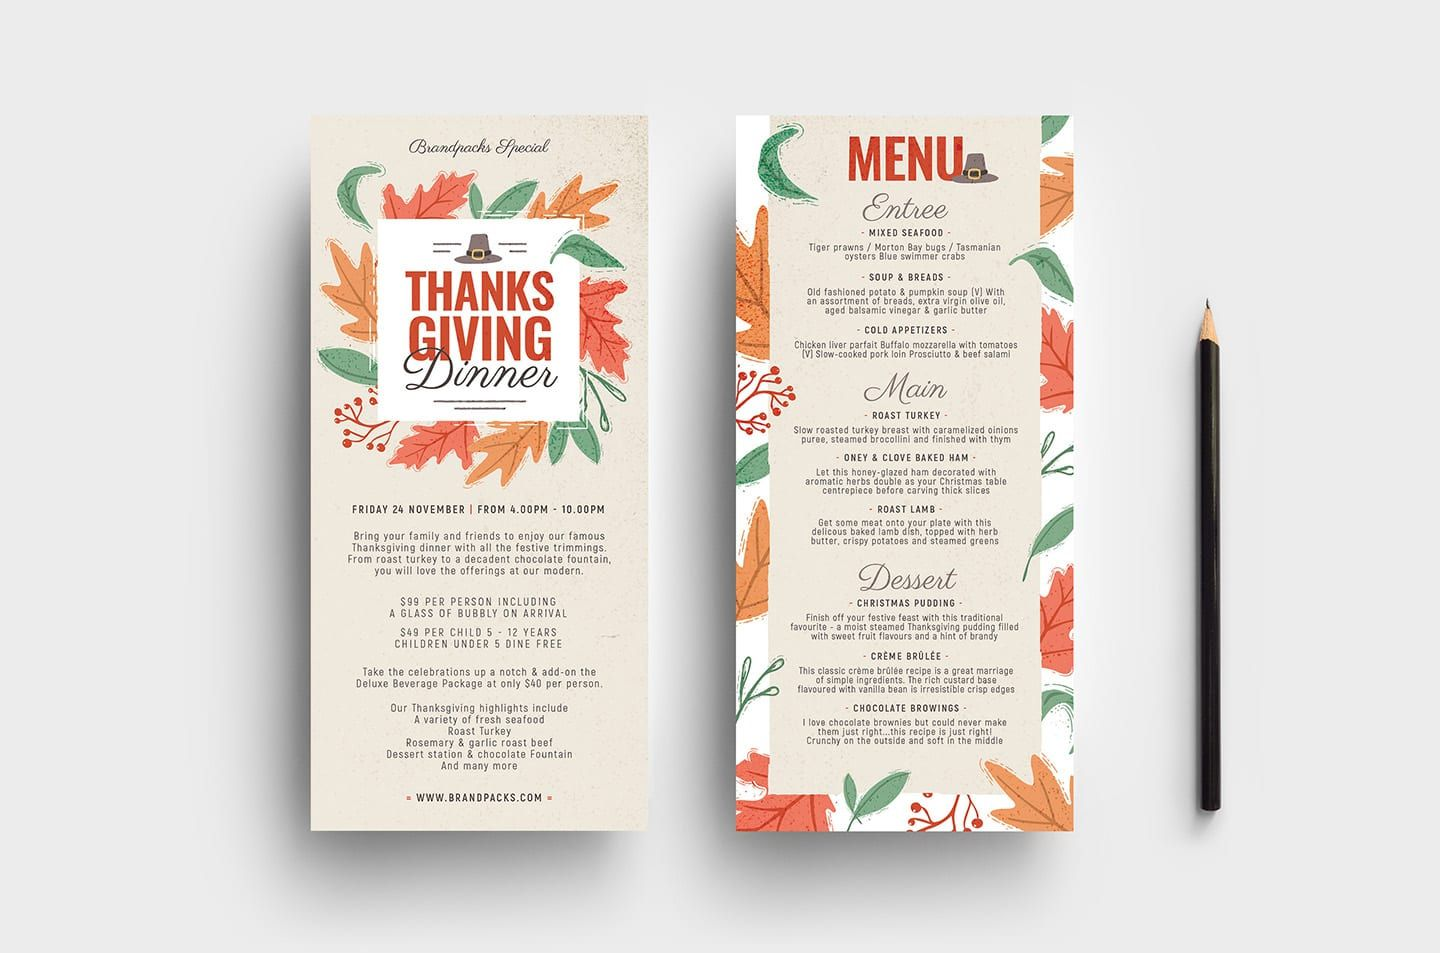 A Thanksgiving dinner menu decorated with fall leaves